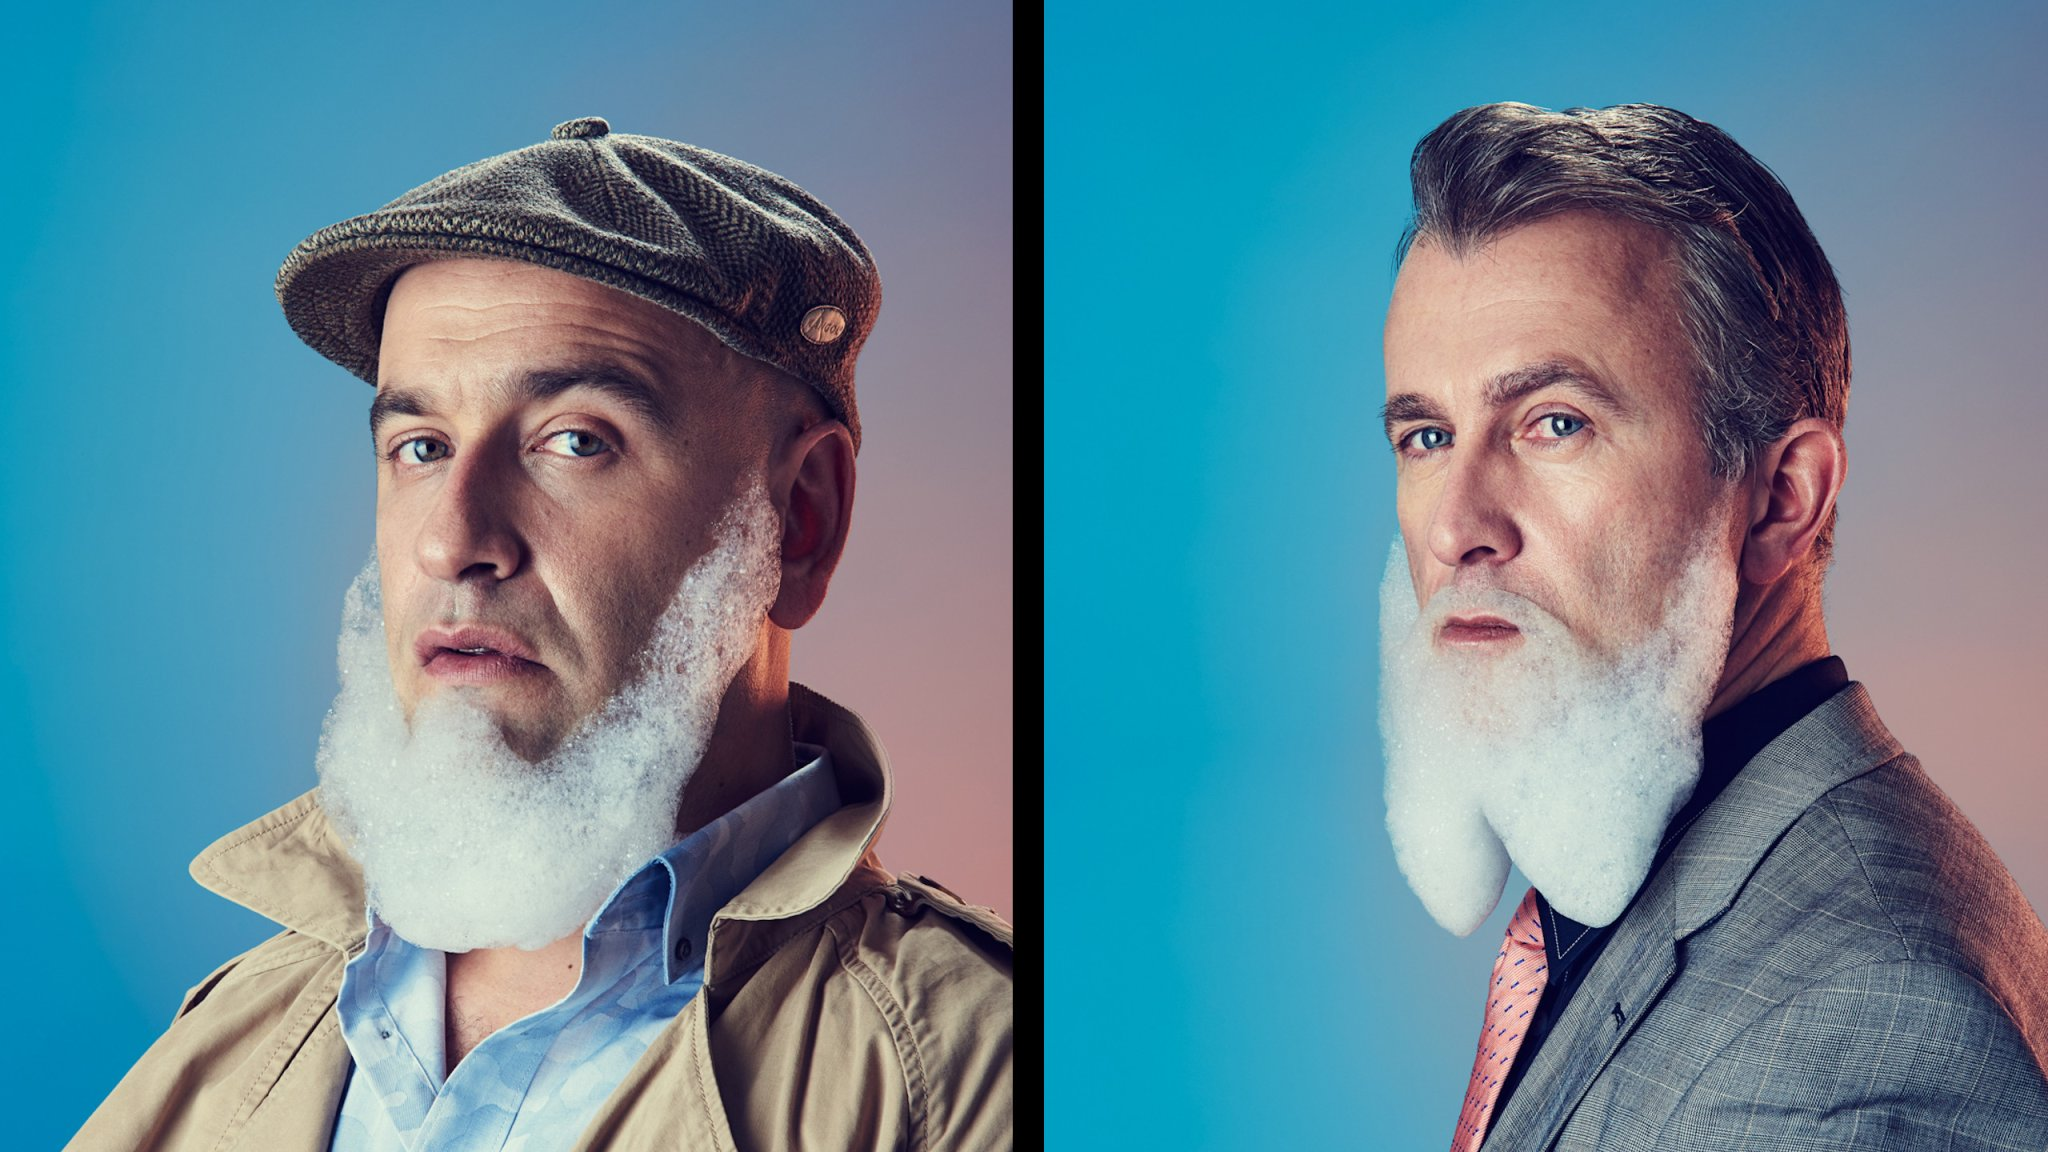 Witty conceptual portraits depict masculinity in modern men